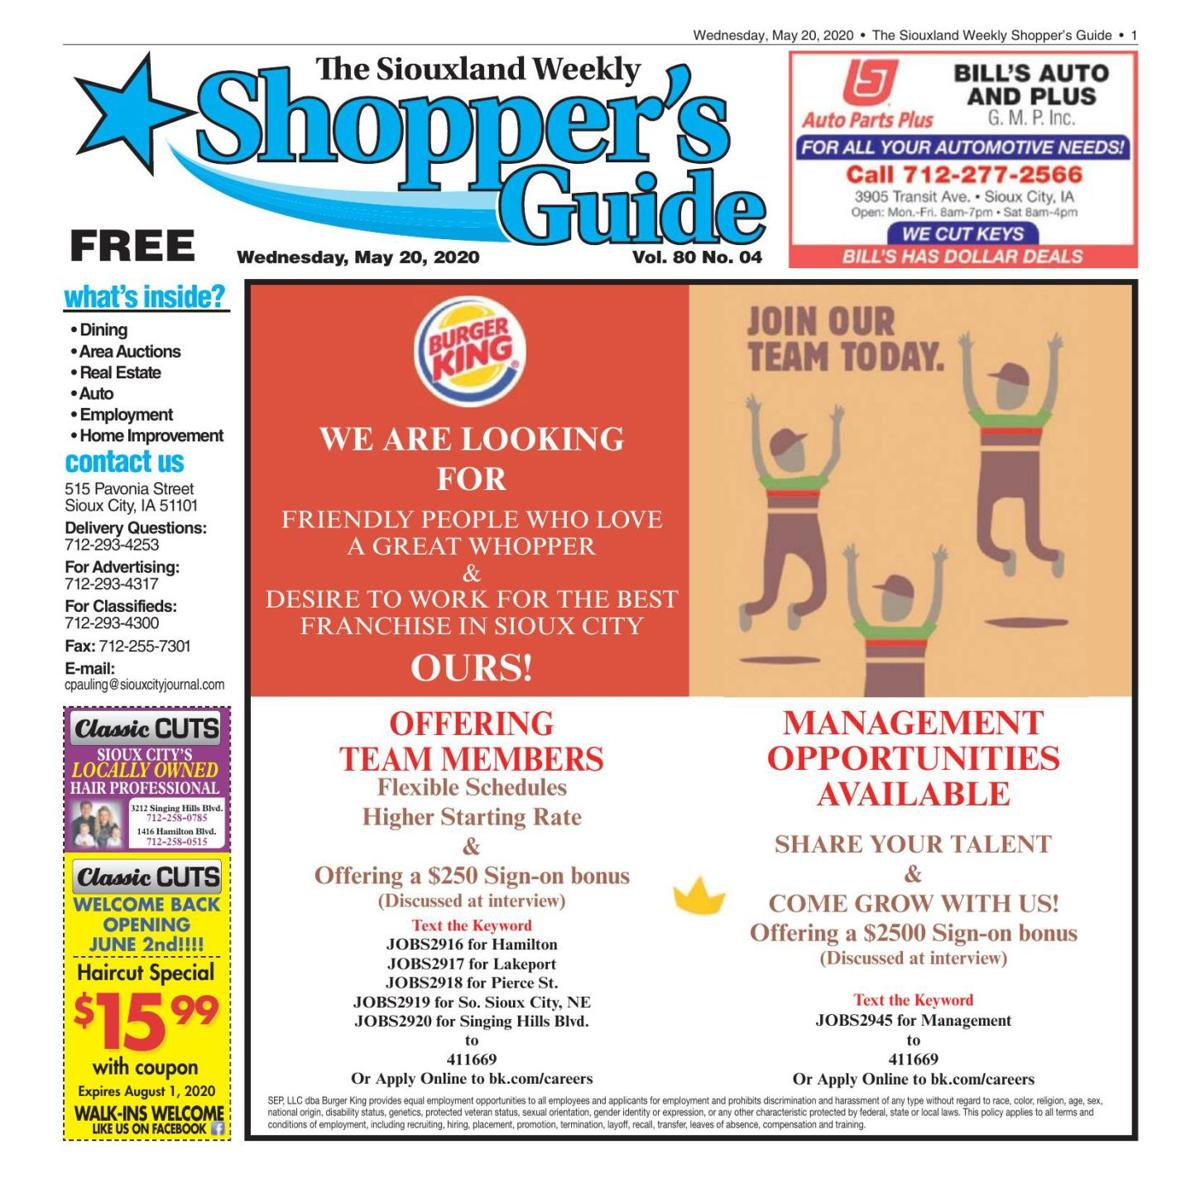 Shopper's Guide - May 20, 2020